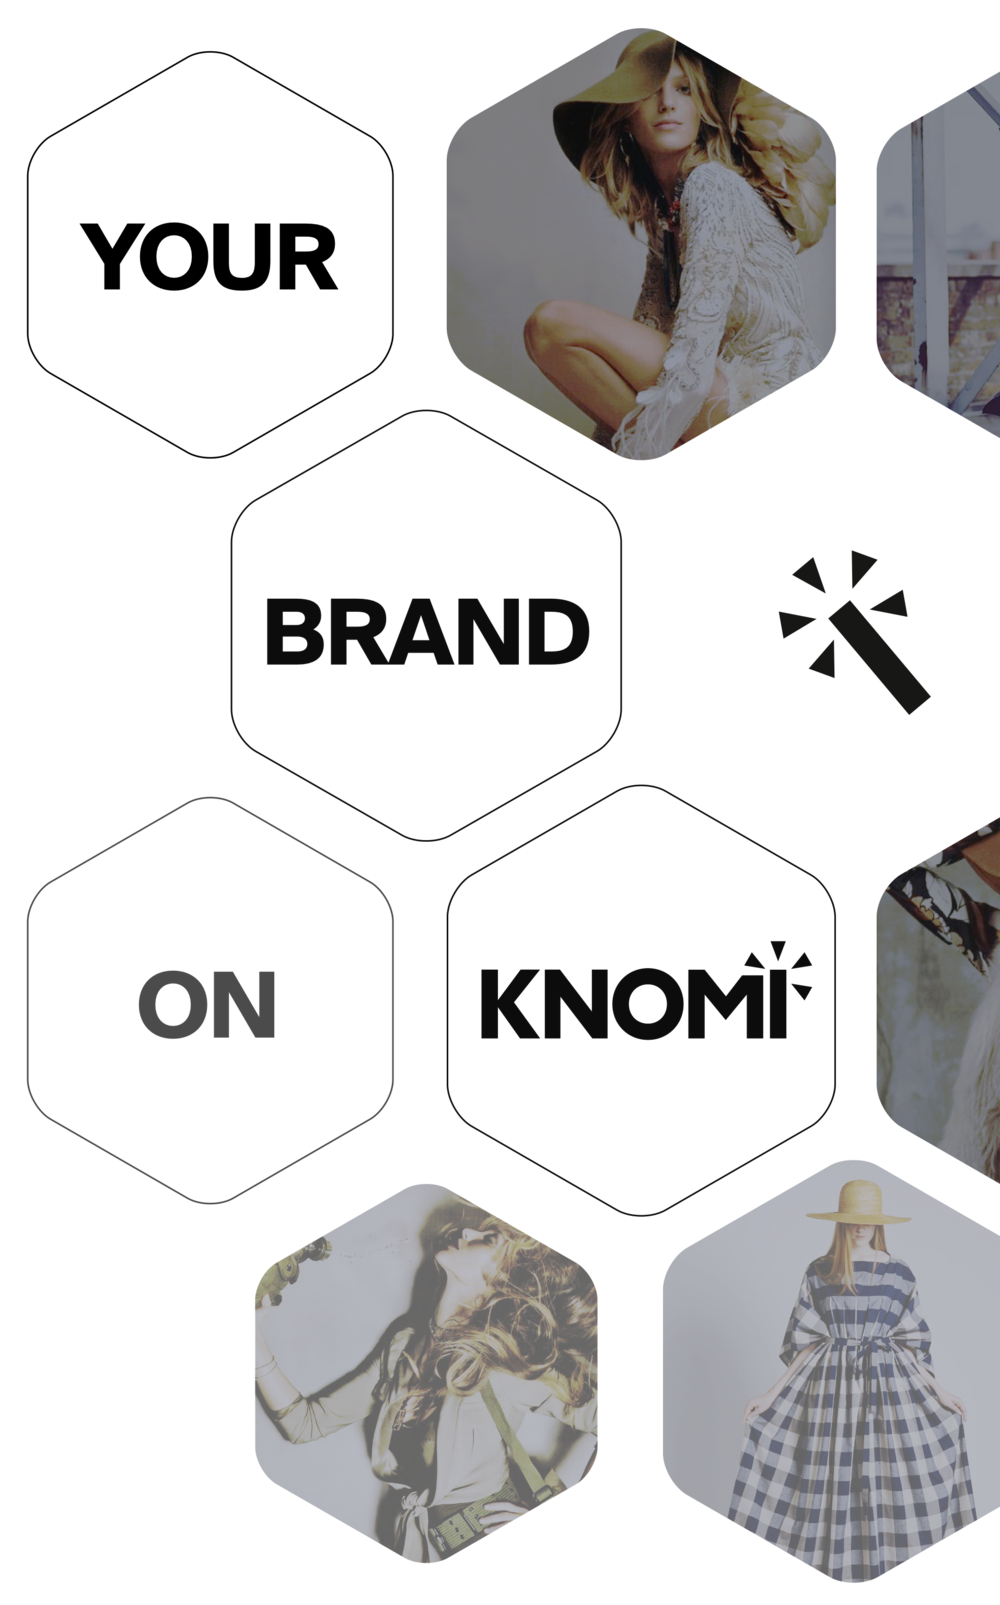 Your brand on KNOMI